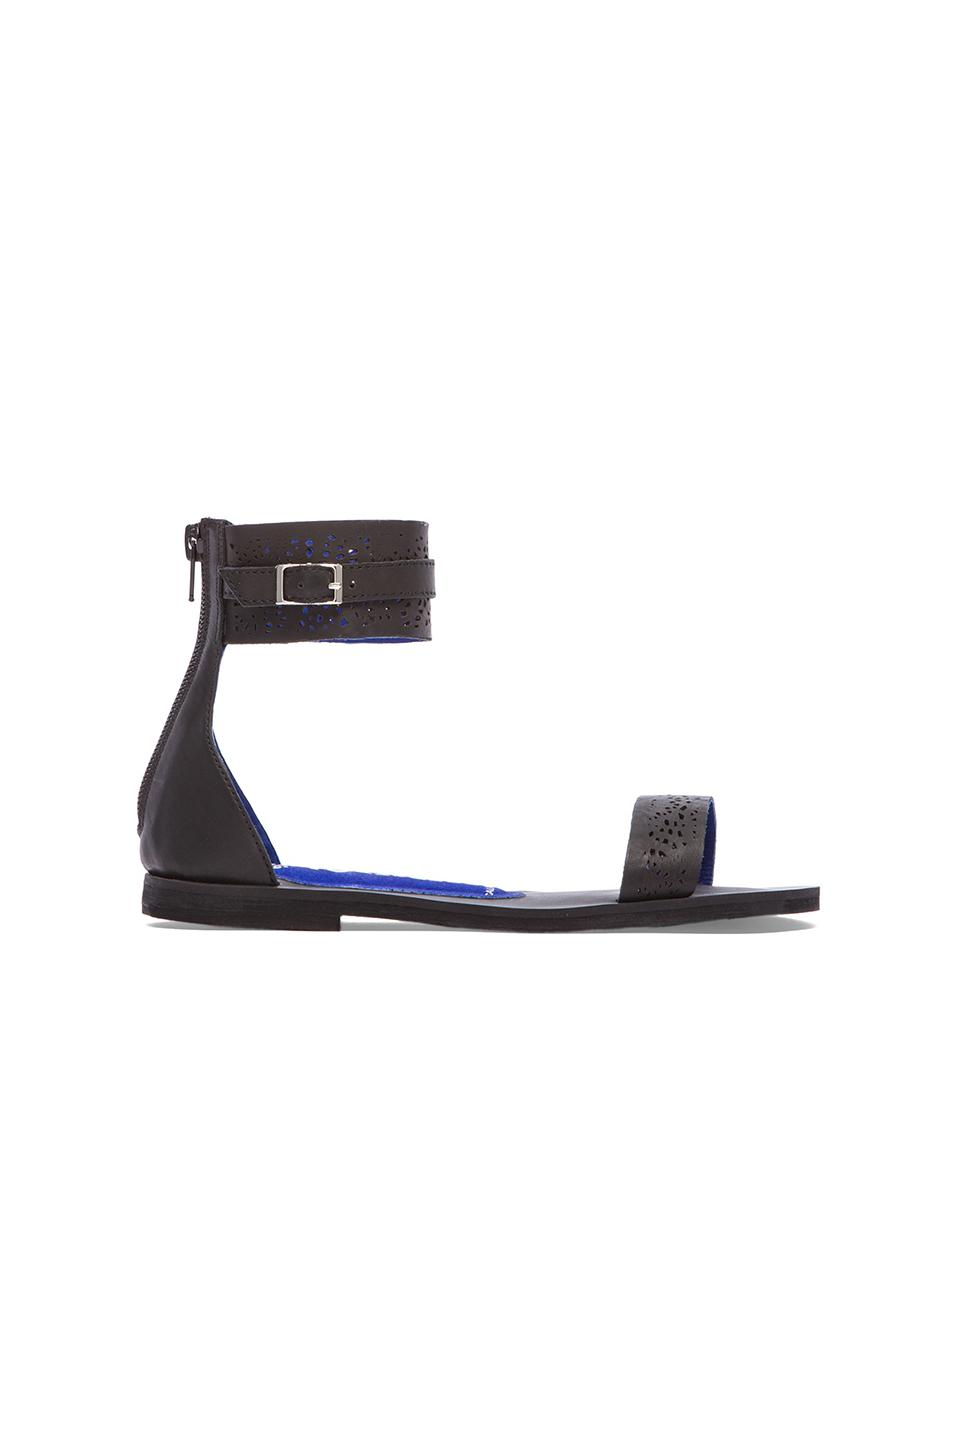 Jeffrey Campbell Islip Sandal in Black